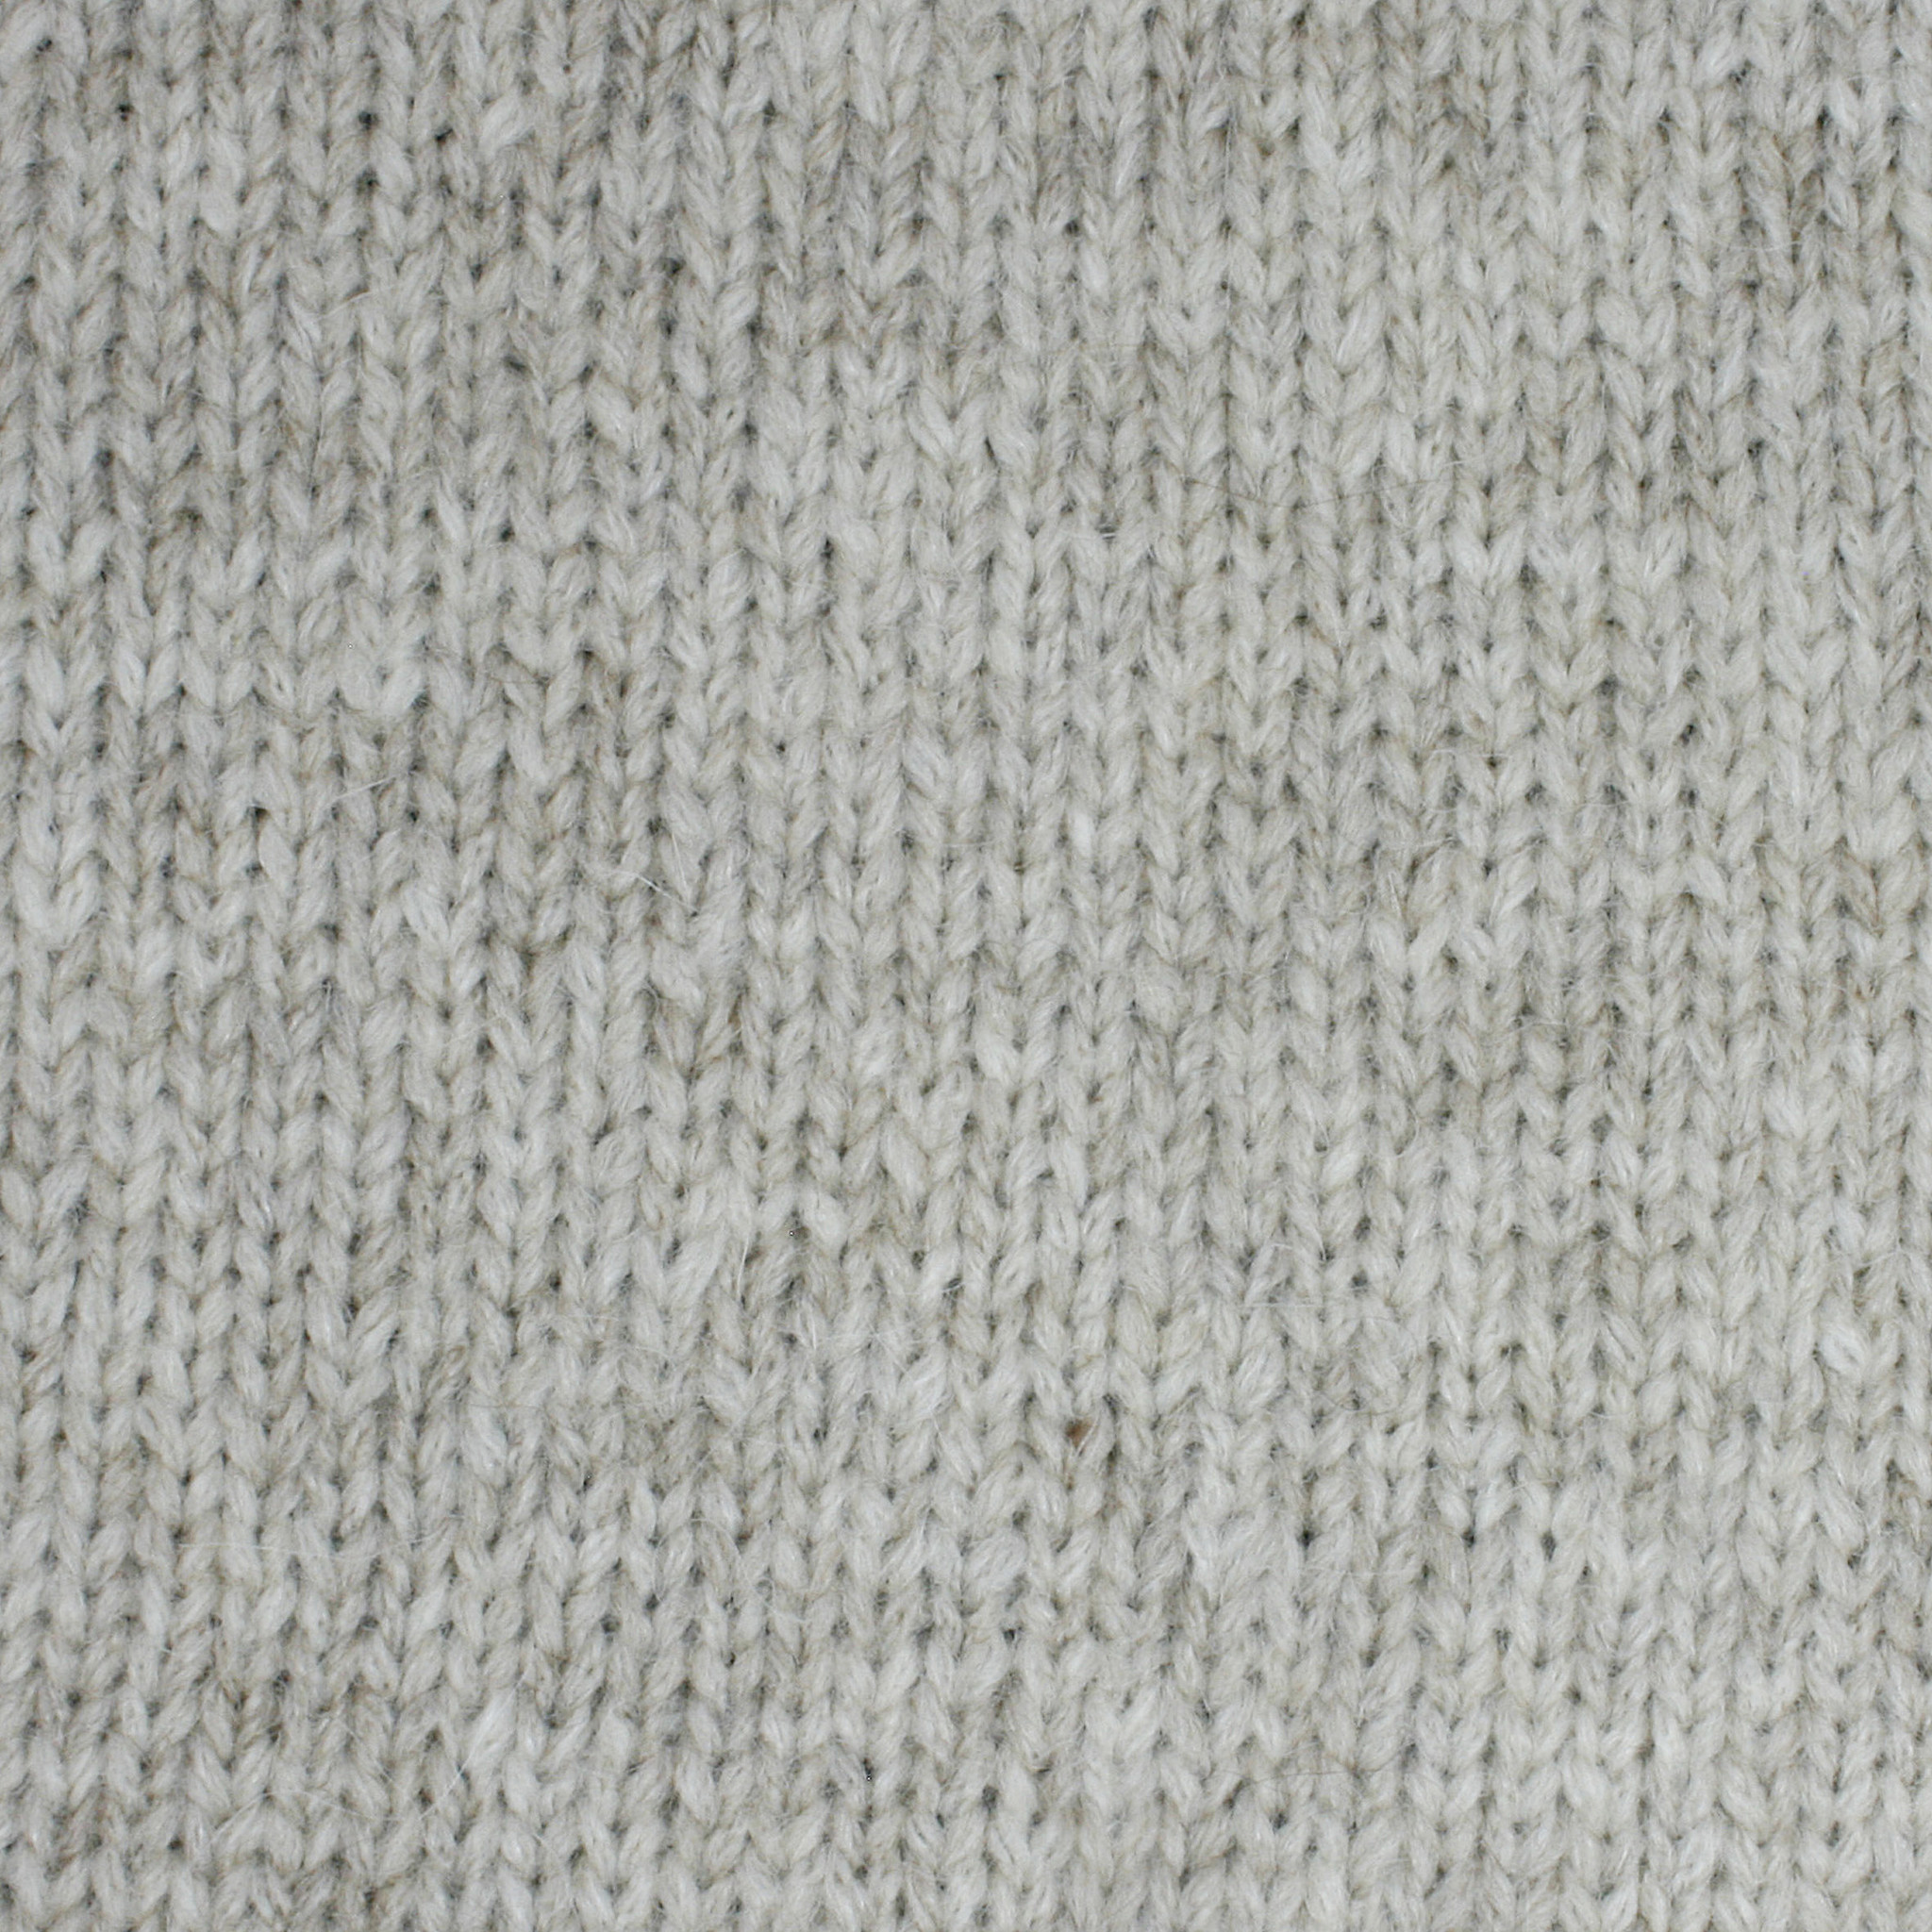 Lang Yarns Respect - 026 - Beige